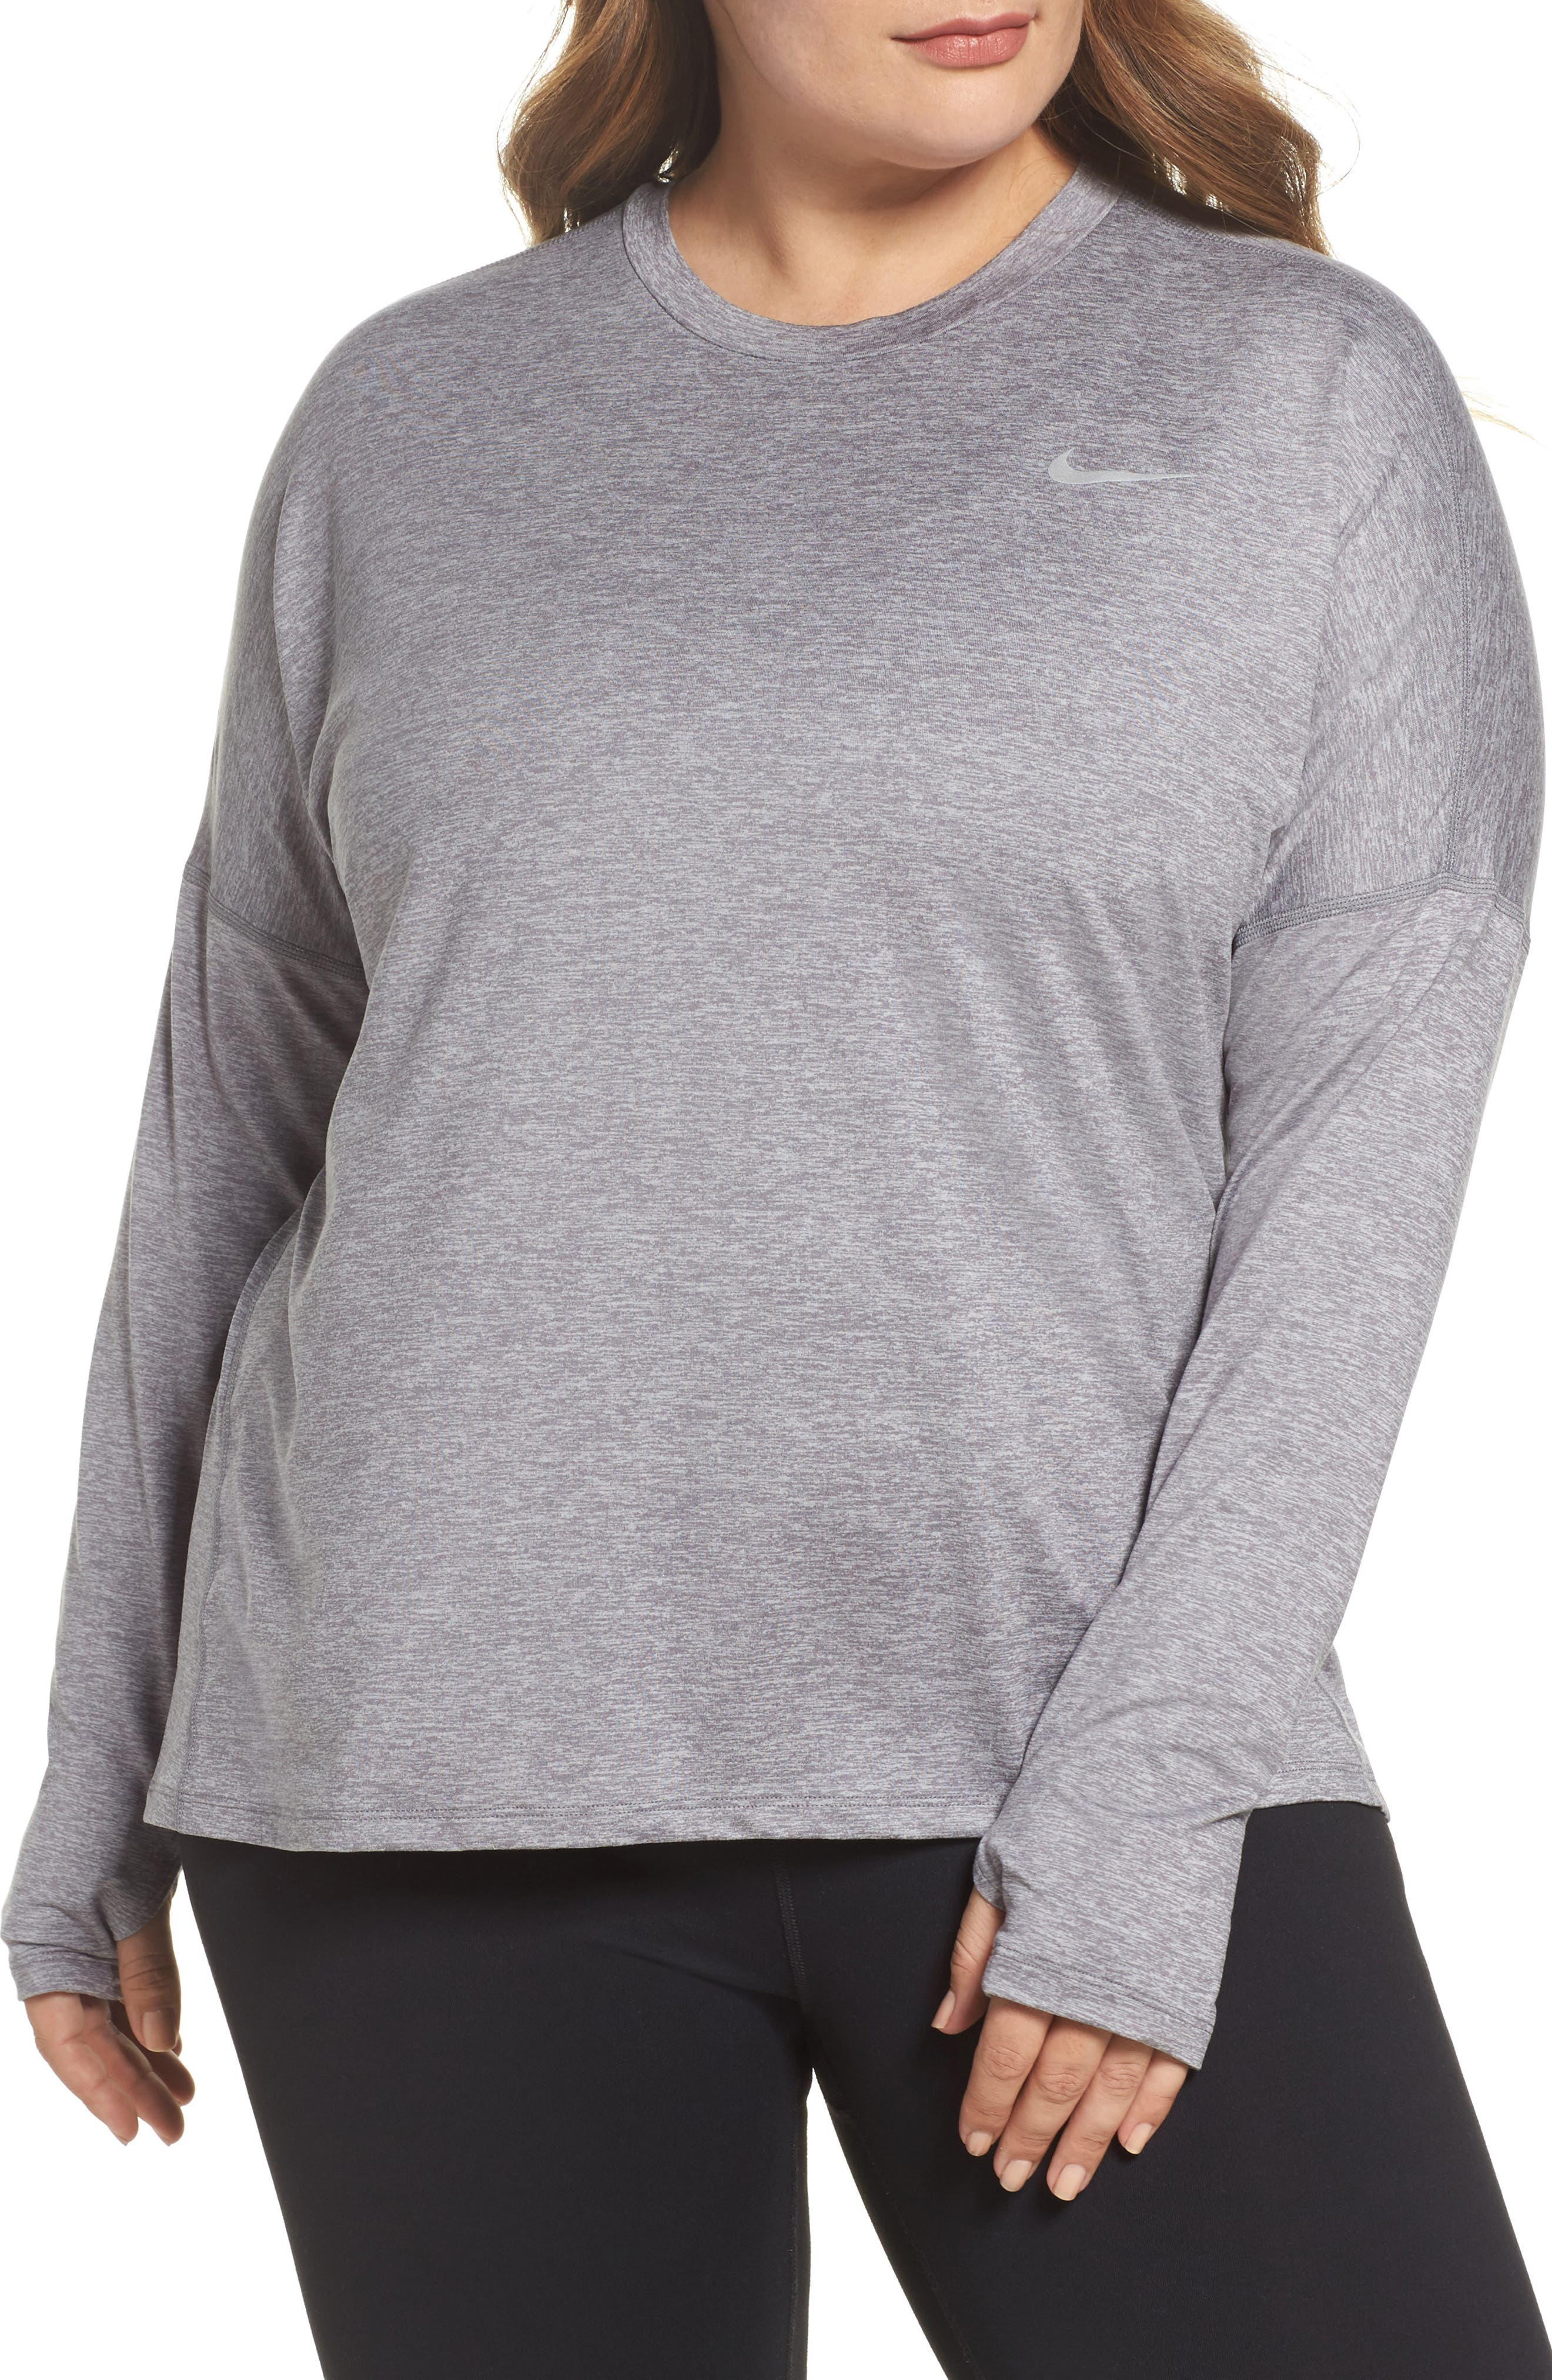 Nike Dry Element Long Sleeve Top (Plus Size)